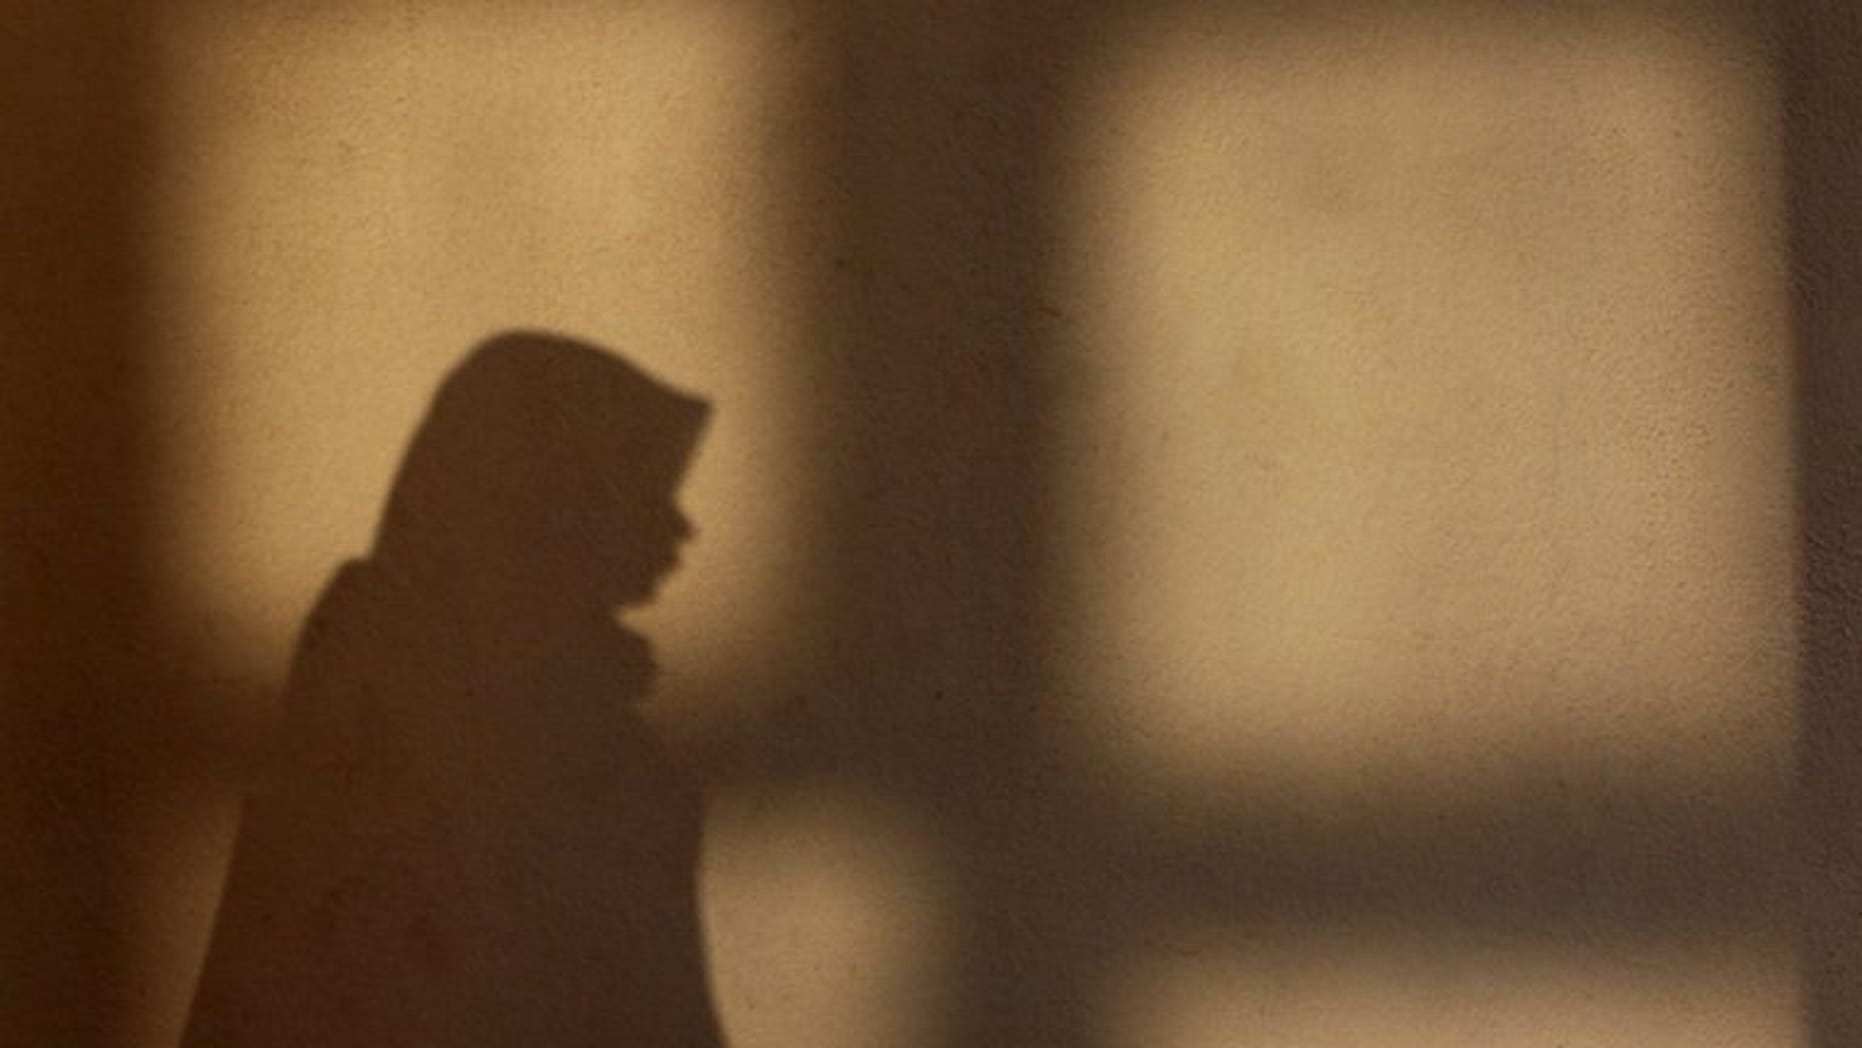 The shadow of a Malaysian woman as she prays during Eid al-Fitr at a mosque in Kuala Lumpur, on August 19, 2012. Malaysian police have arrested a woman who angered Muslims by posting a video greeting for the Eid al-Fitr holiday that featured her dogs, her lawyer said.